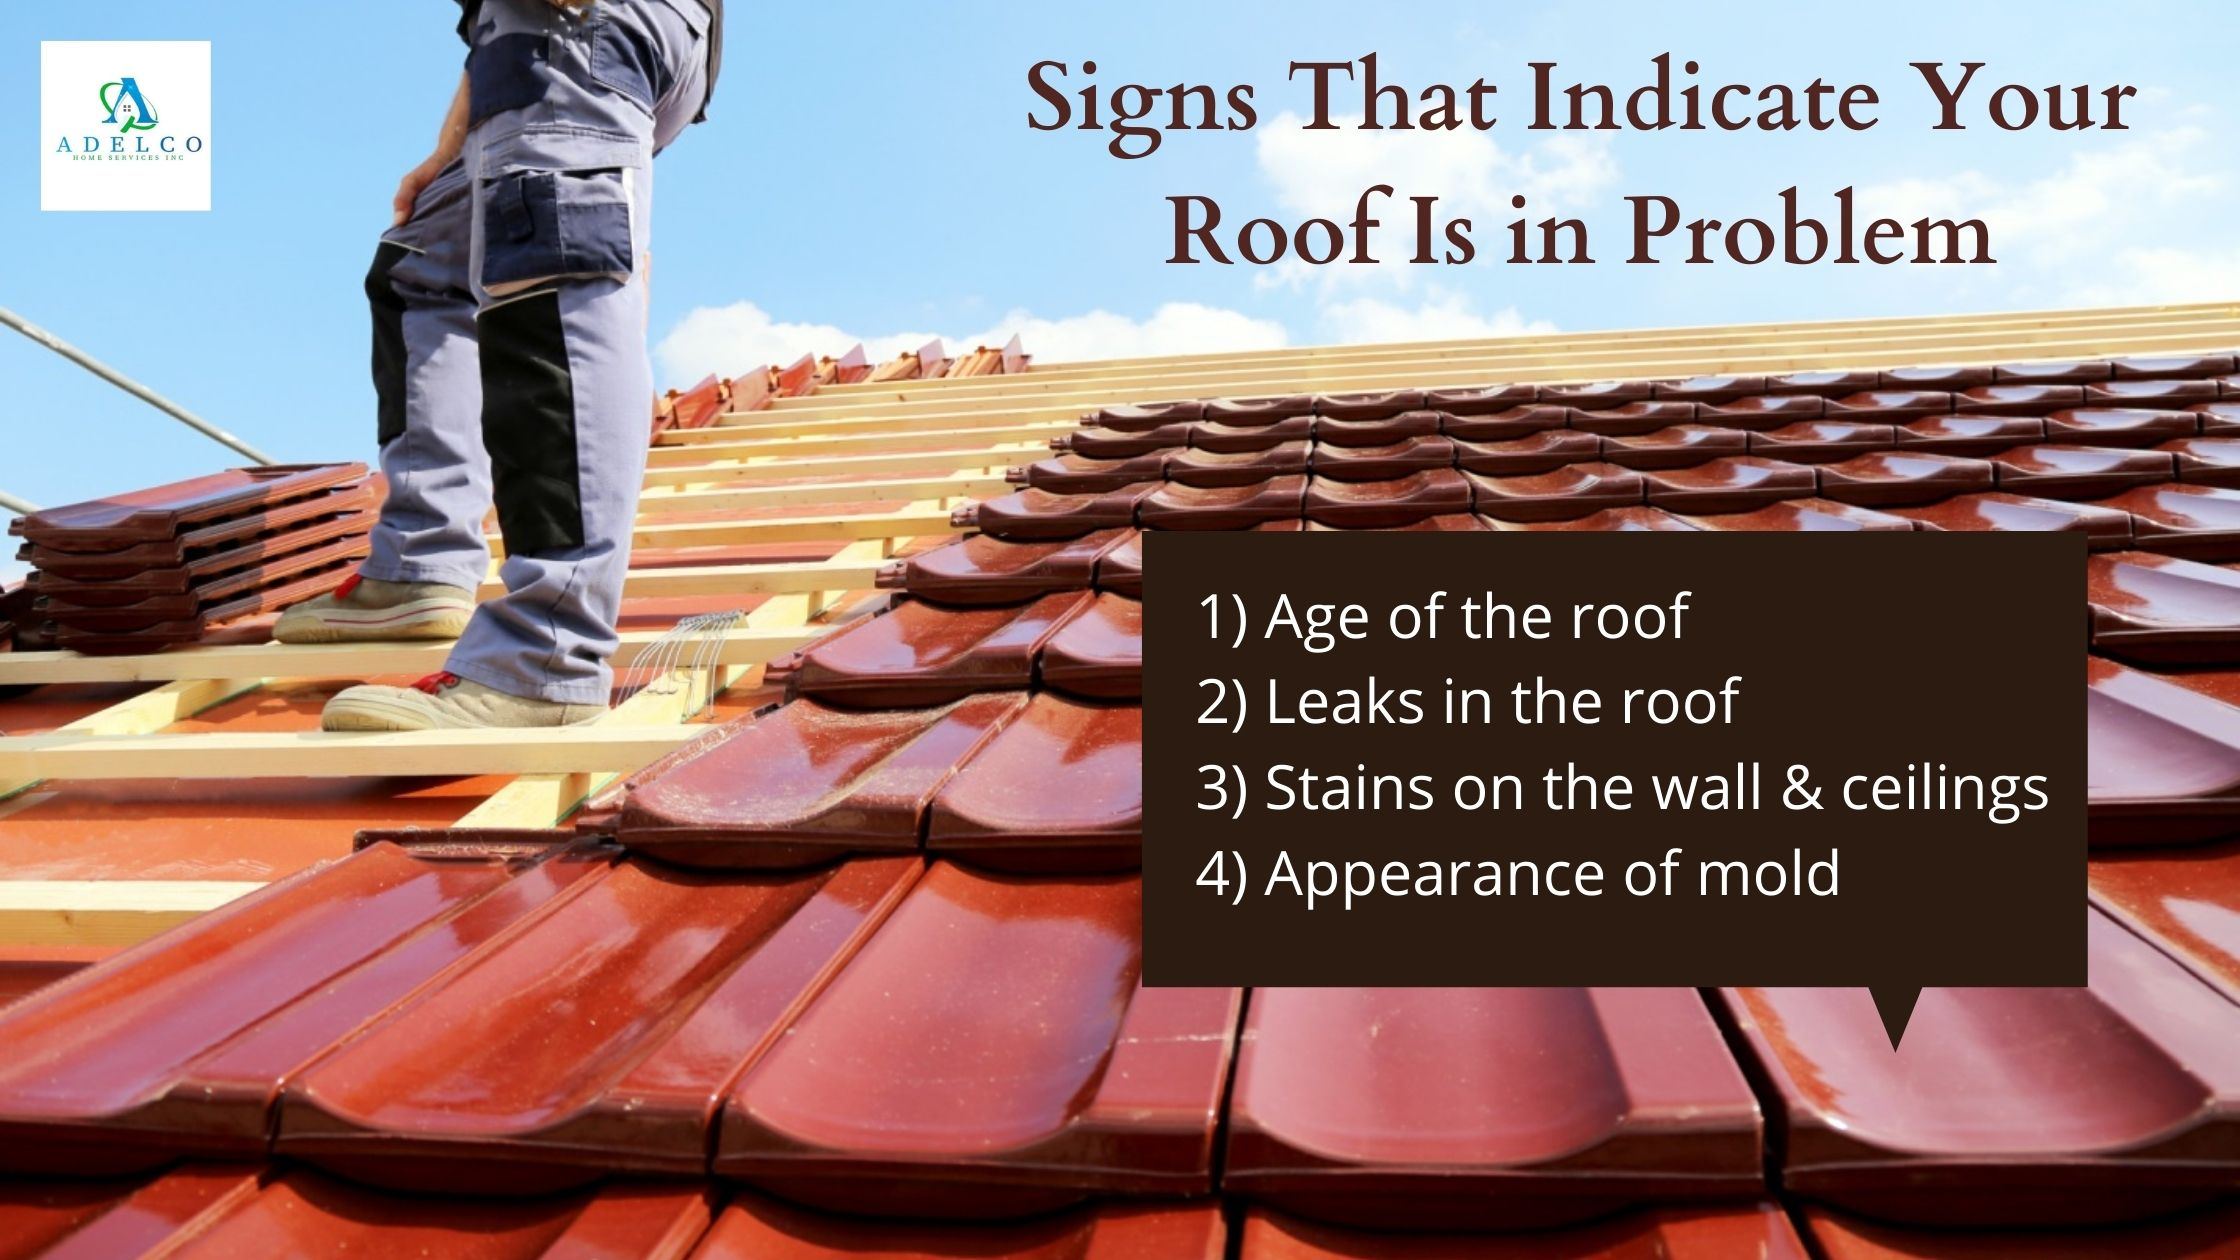 Signs that Indicate Your Roof is in Problem